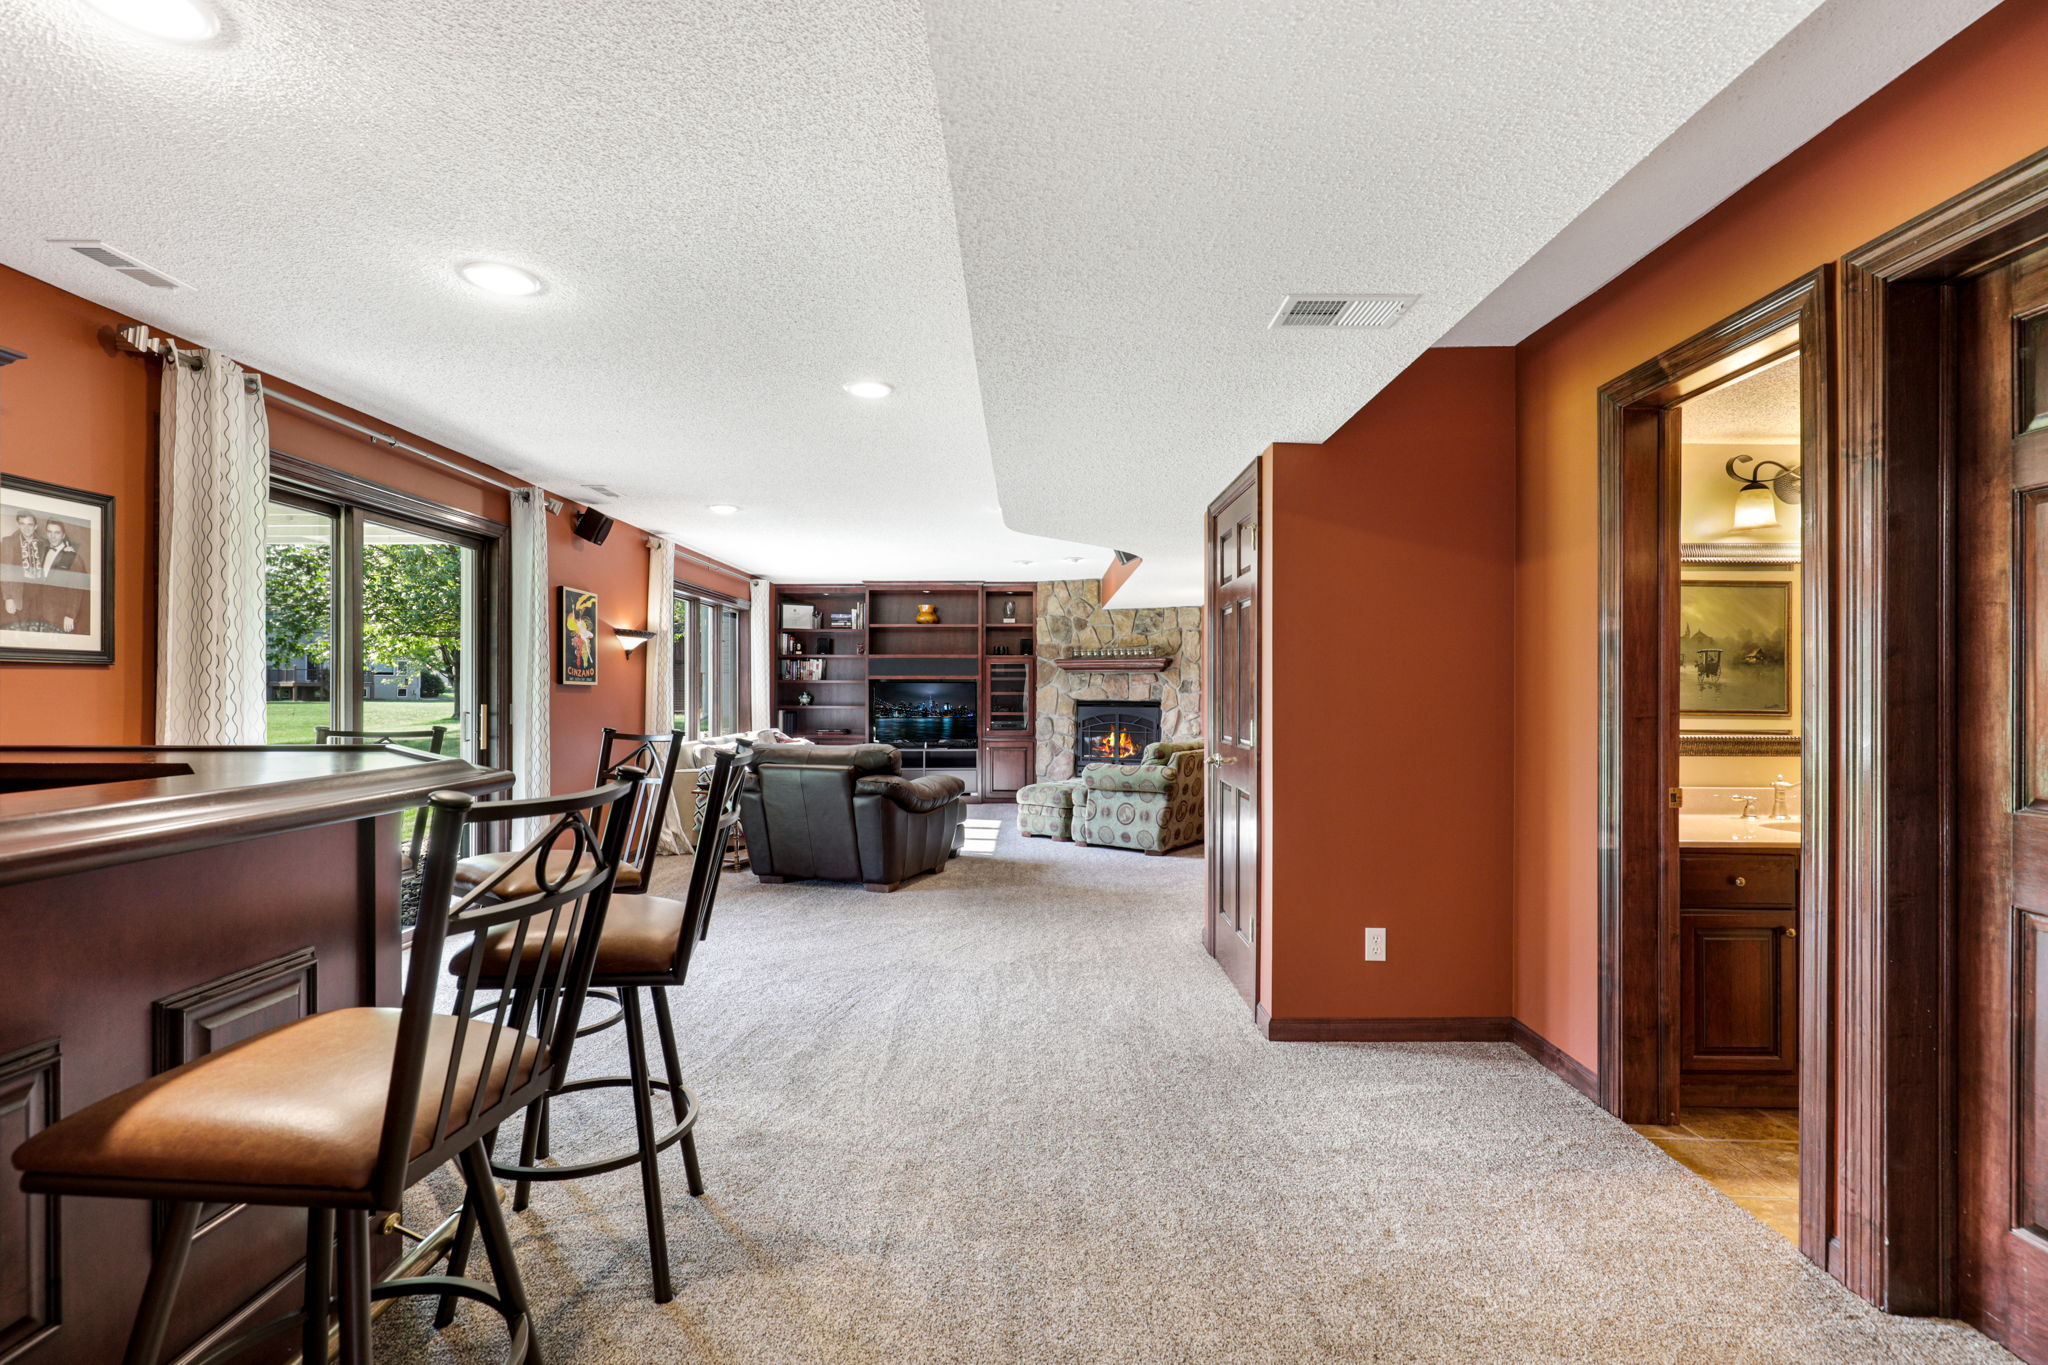 6652 Clearwater Creek Dr, Lino Lakes, MN 55038, USA Photo 39